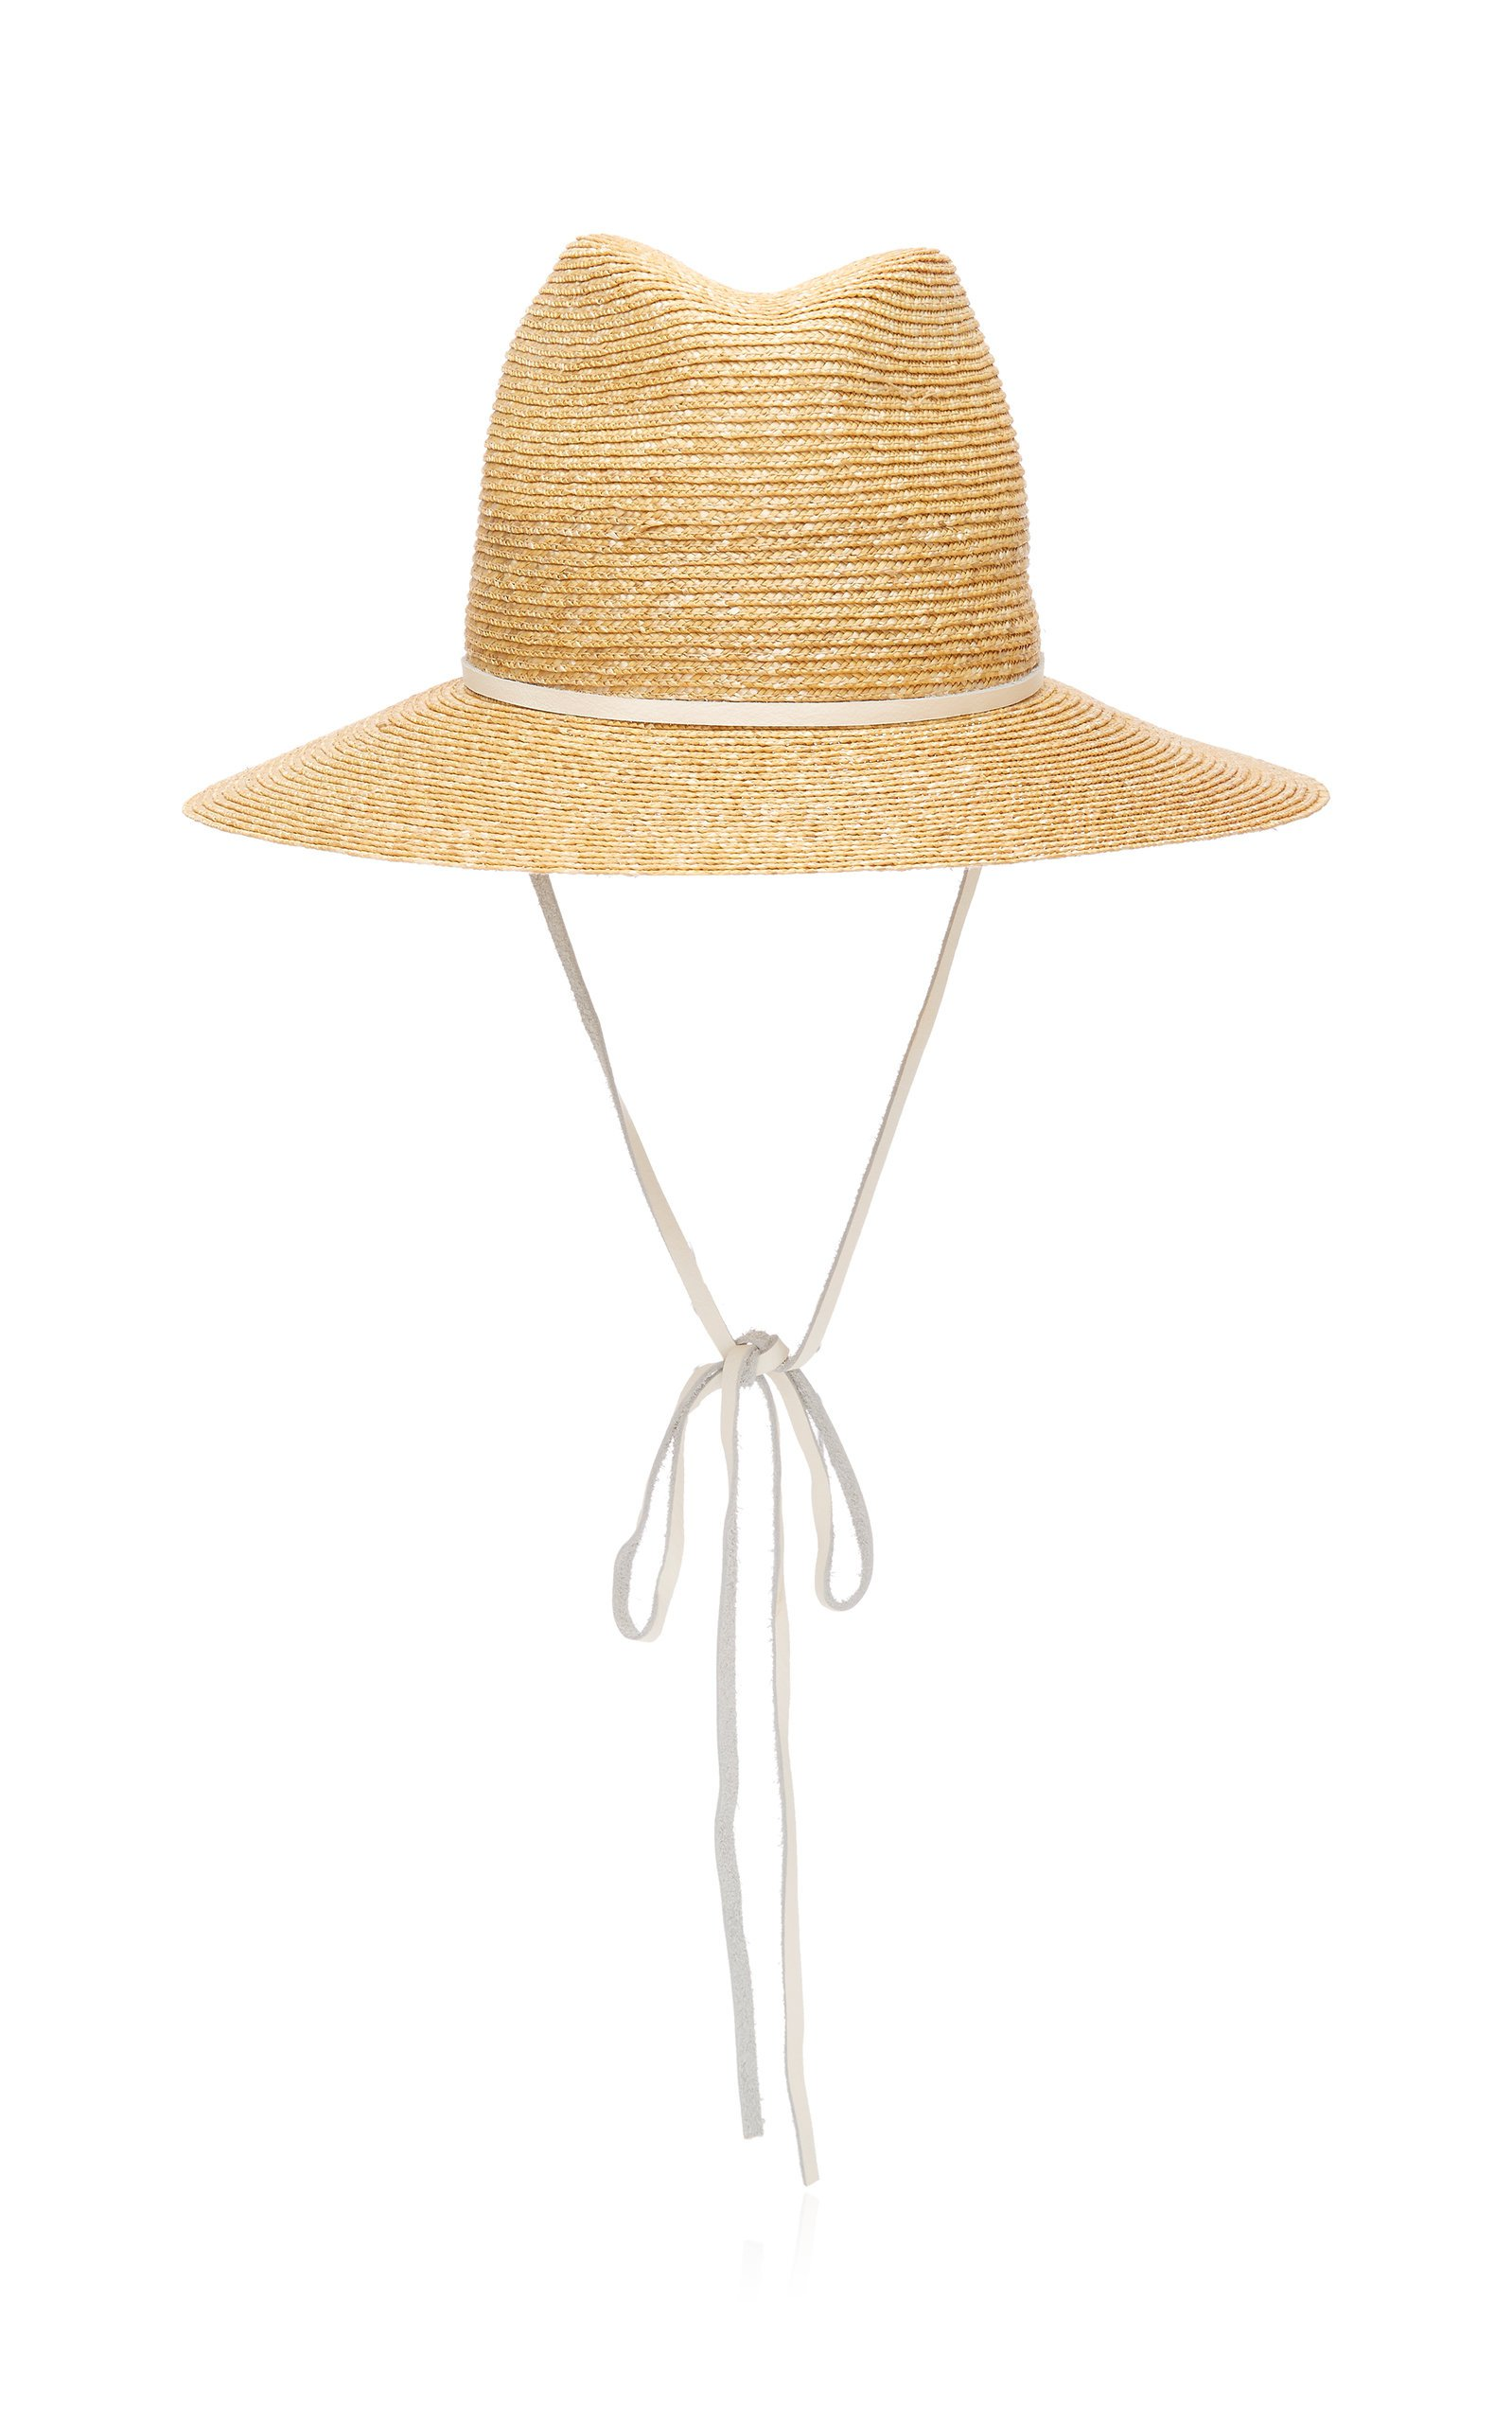 Lola Hats Marseille Leather-Trimmed Straw Hat